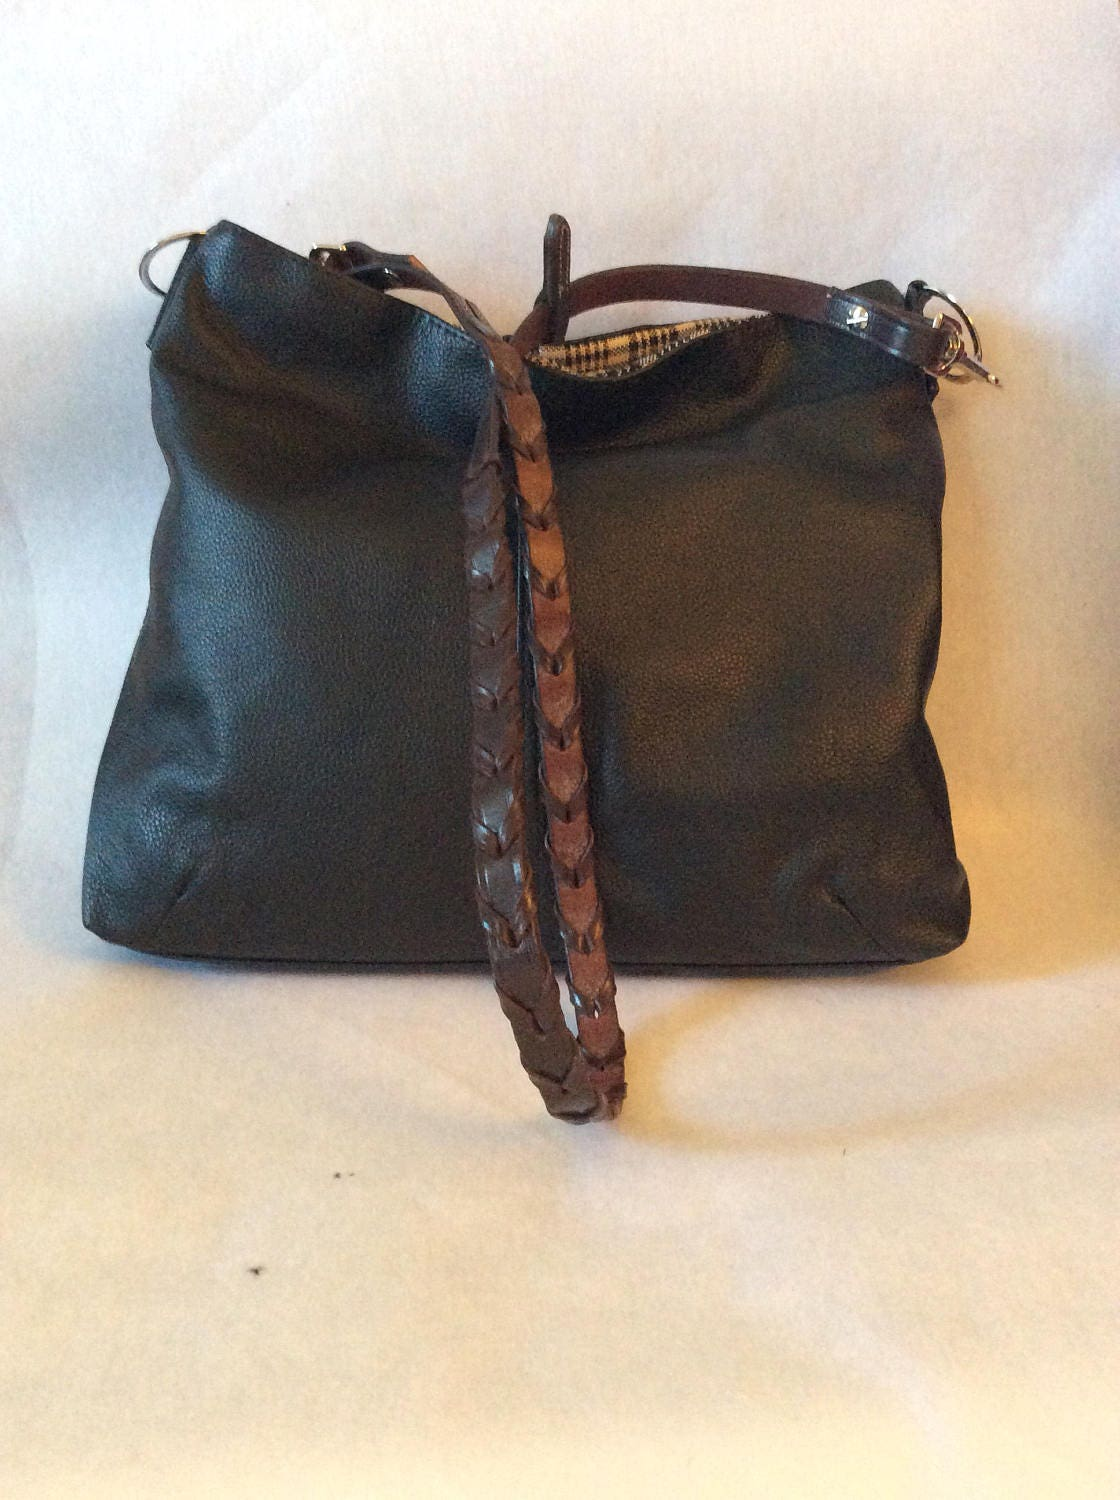 b6d7efc4cd9 Black Leather Equestrian Horse Bit Tote Handbag Purse Kentucky Derby